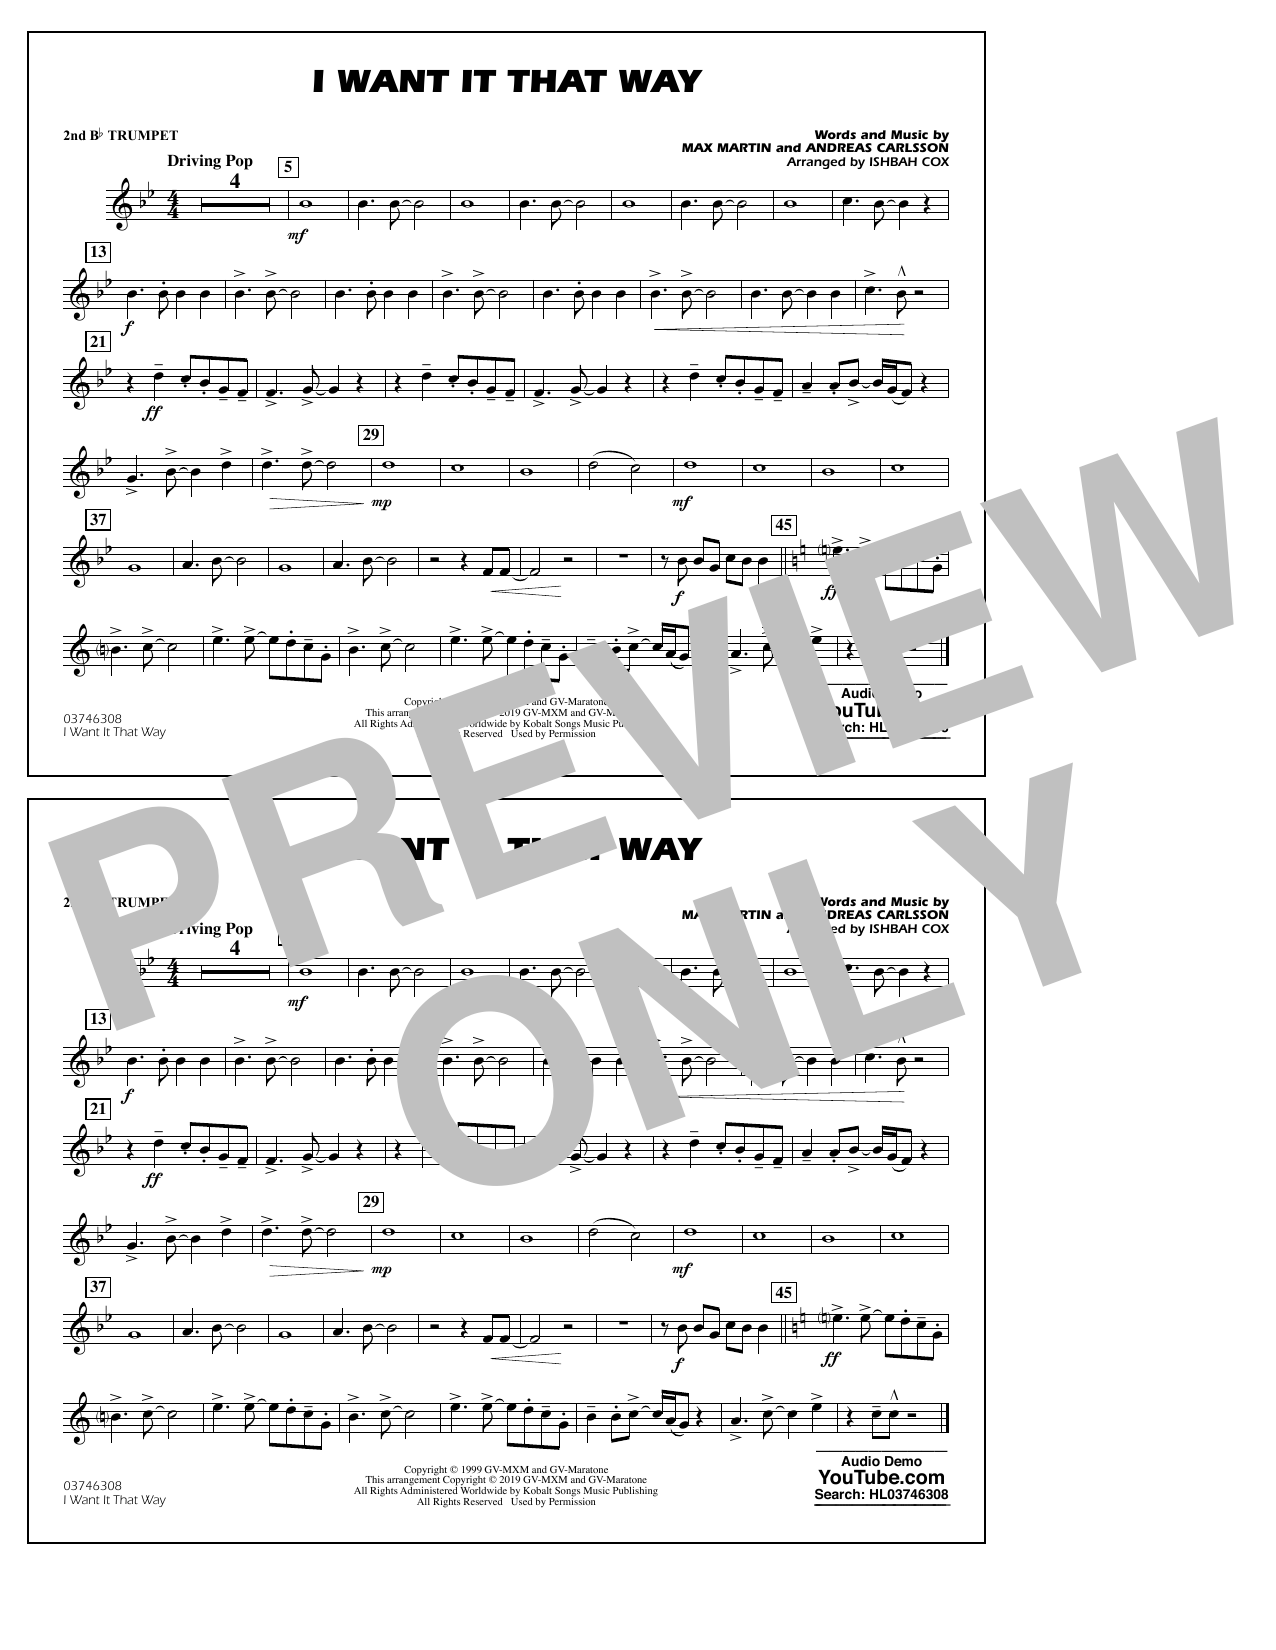 Backstreet Boys I Want It That Way (arr. Ishbah Cox) - 2nd Bb Trumpet sheet music notes and chords